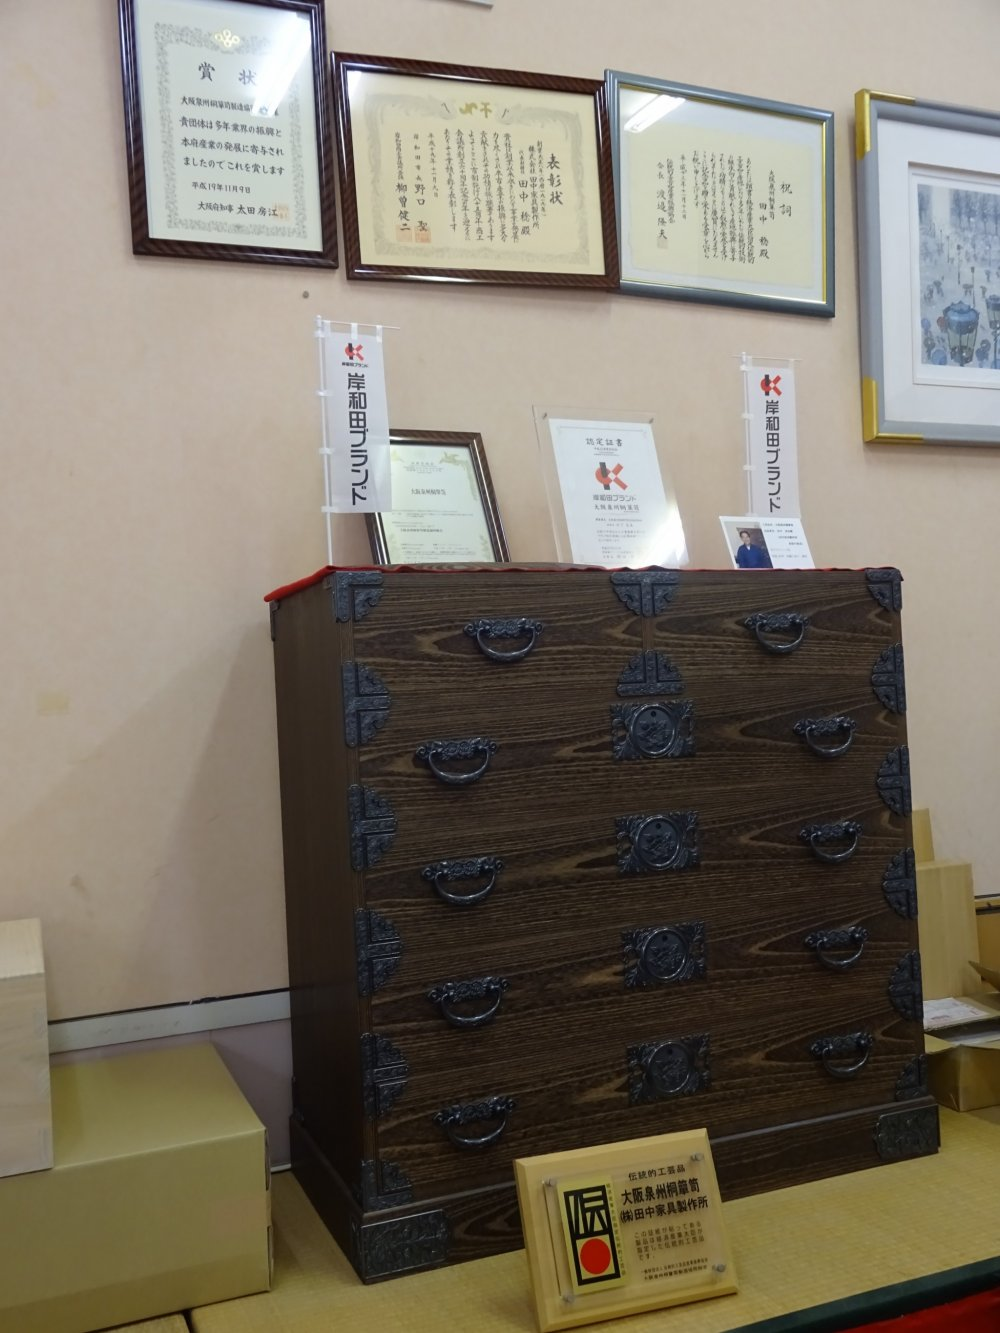 Beautiful chest of drawers made by Hatsune no kagu, a family business with almost 100years of experience